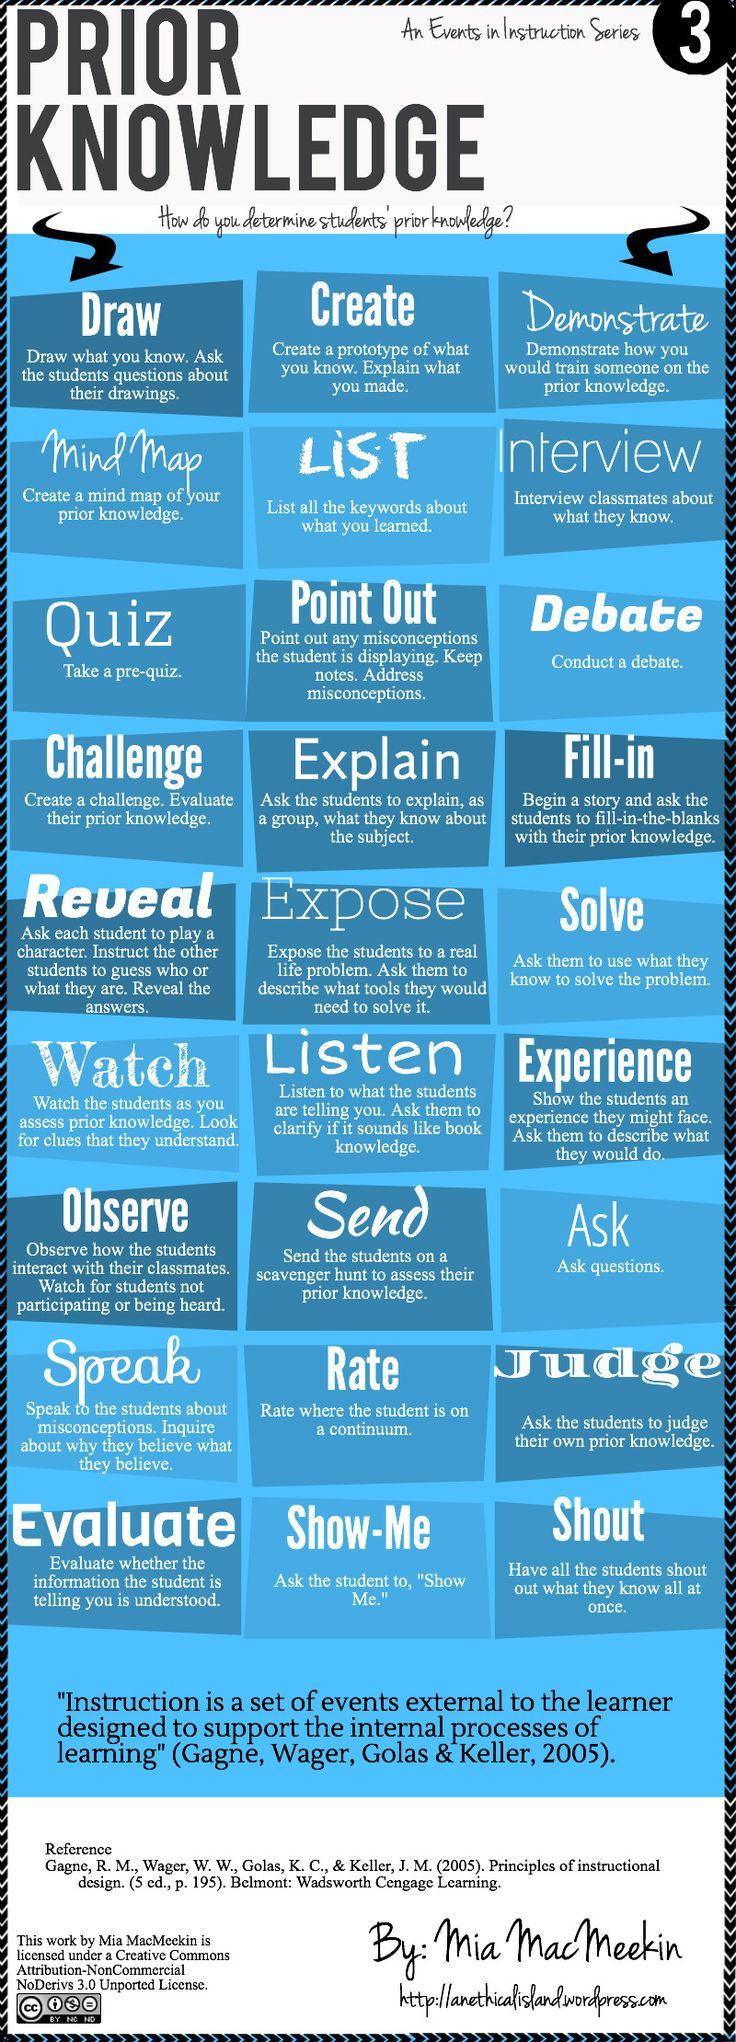 first day of class | Piktochart Infographic Editor- Eays to Determine a Students Prior Knowledge